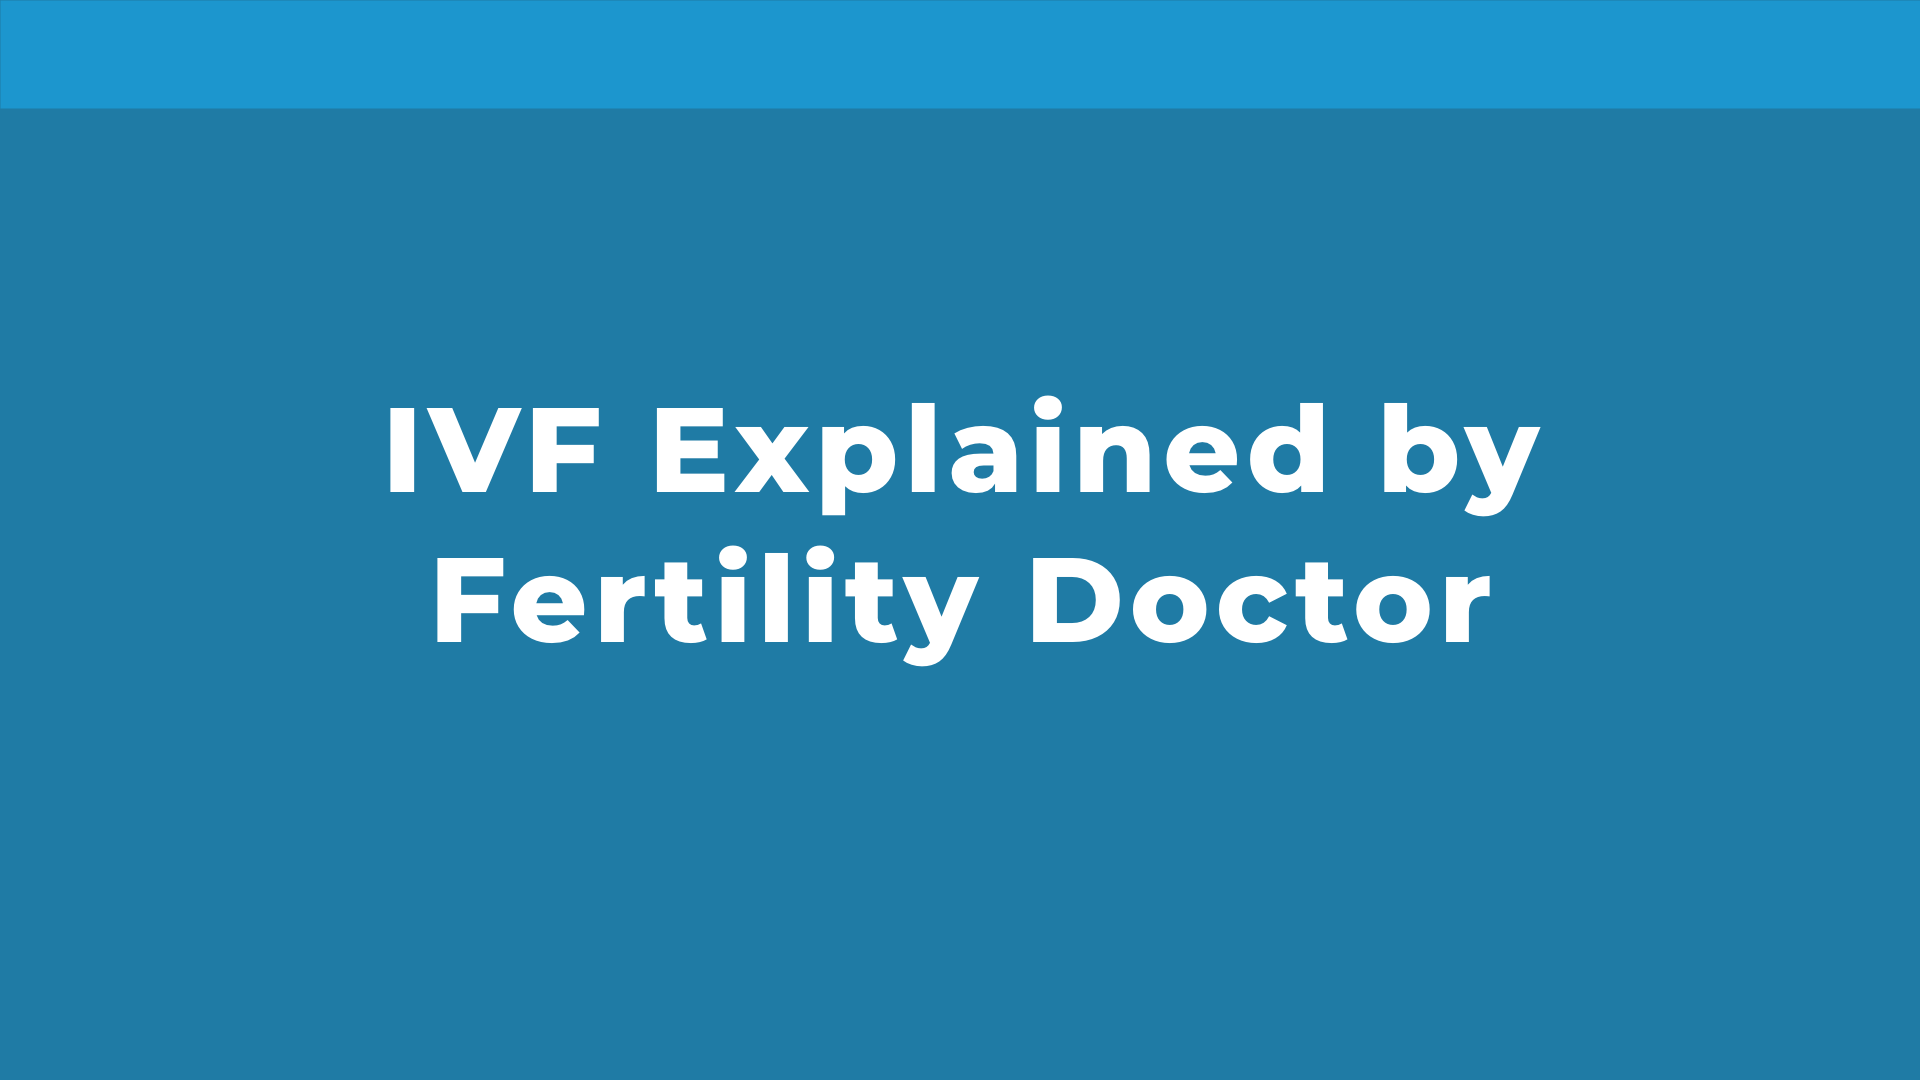 IVF Explained by Fertility Doctor